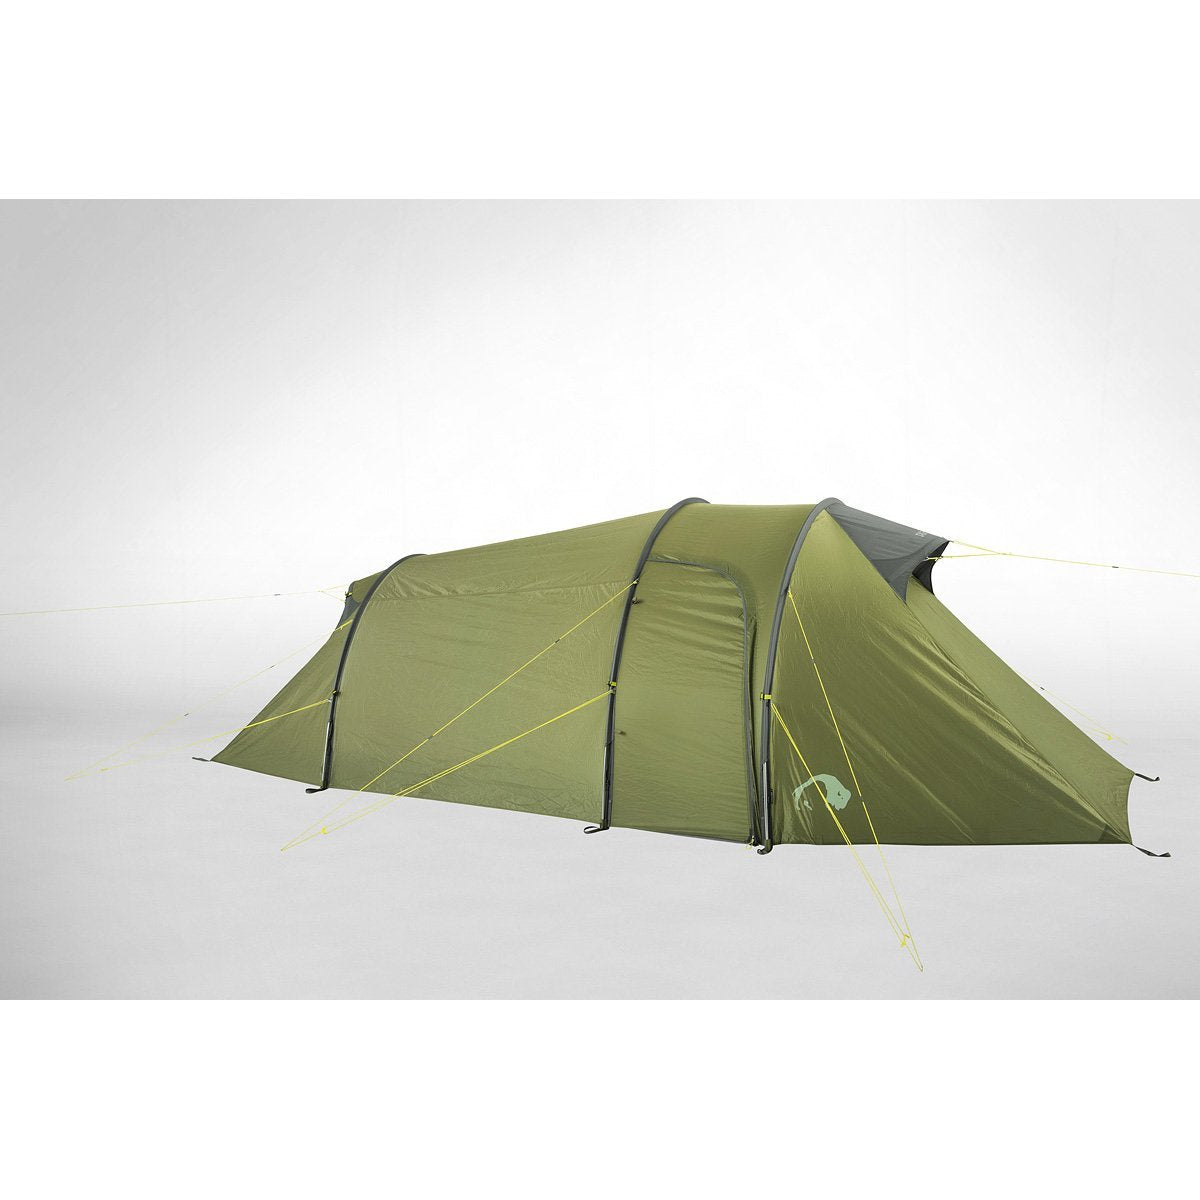 Tatonka Gronland 3 Persons Tent Light Olive Tactical Gear Australia Supplier Distributor Dealer